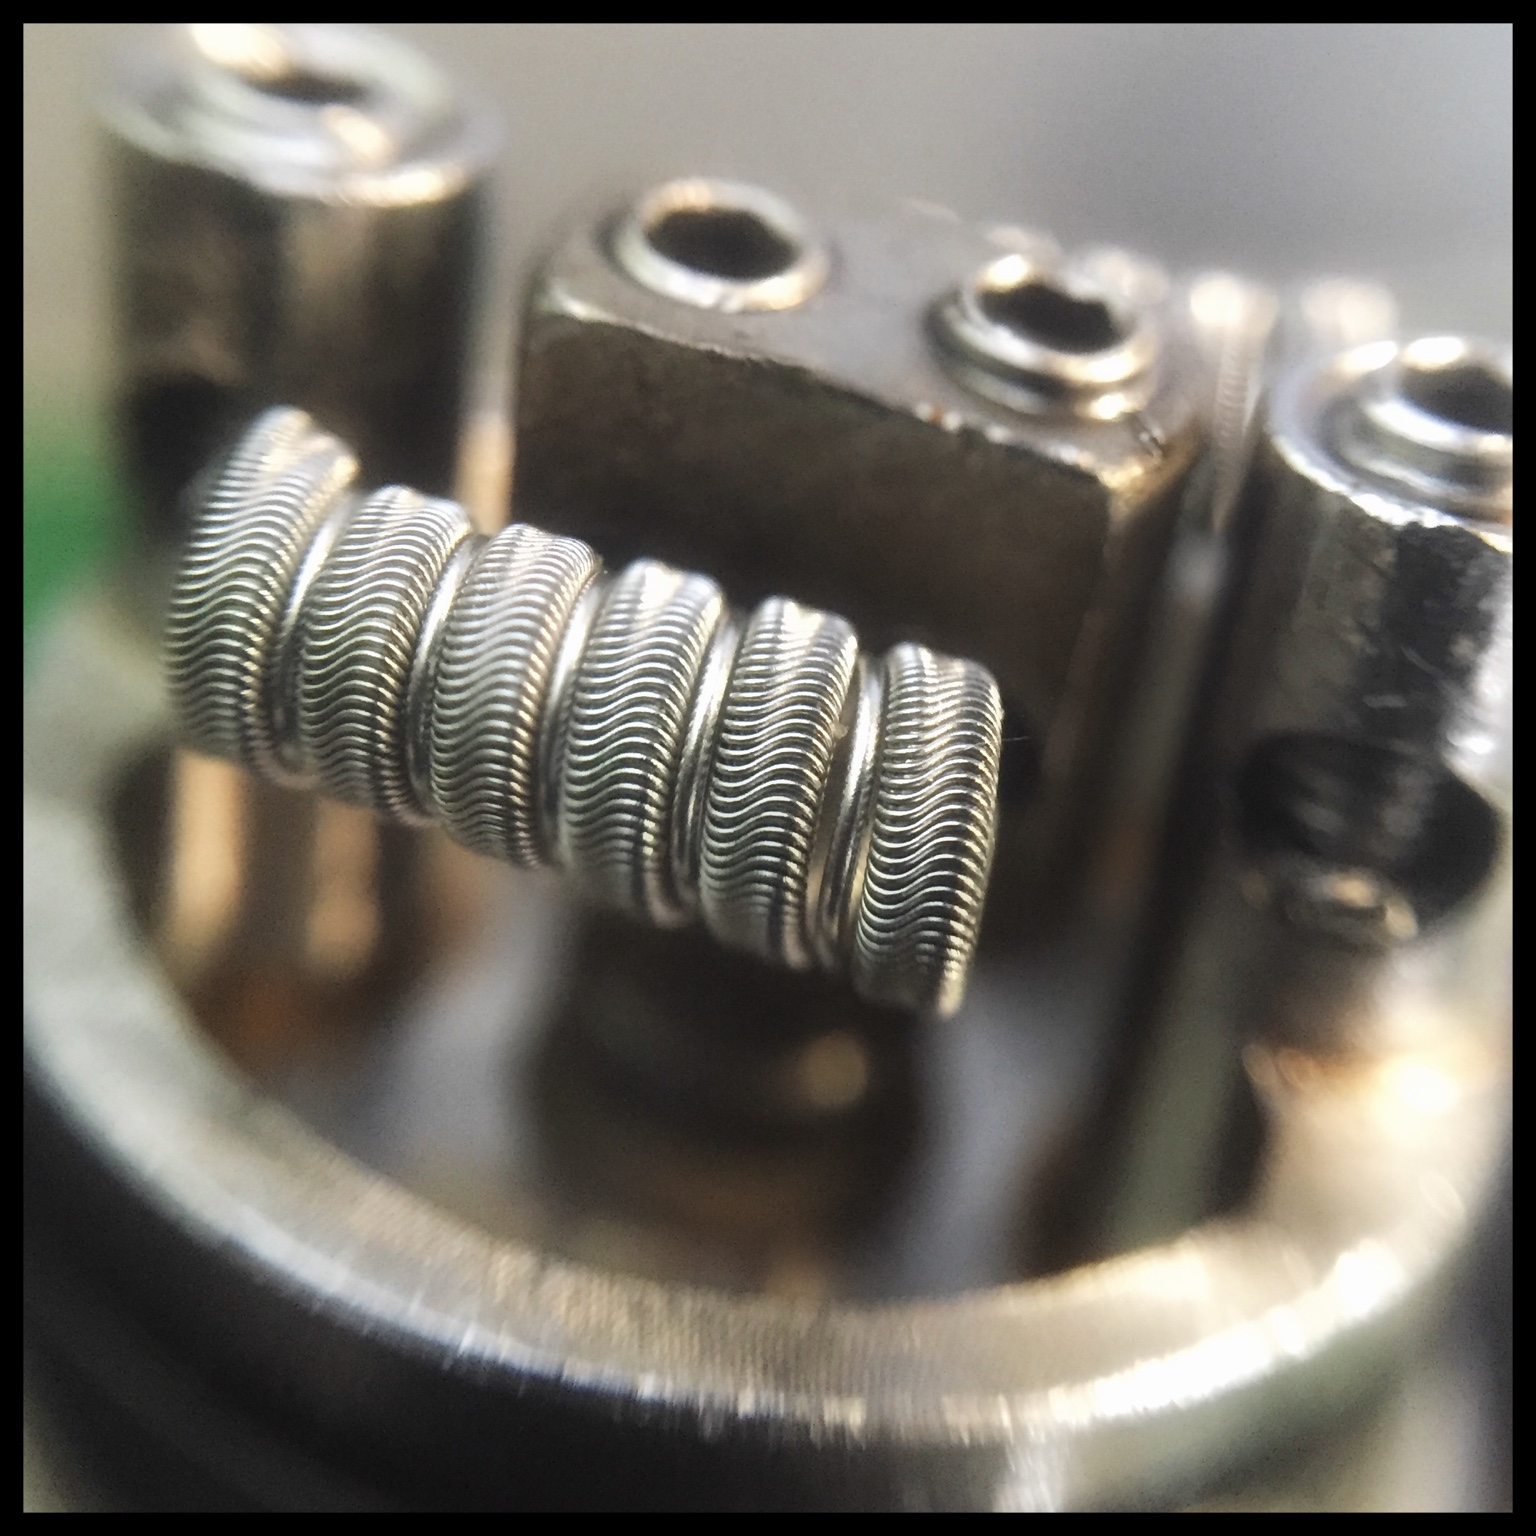 Alien Clapton Wire Build Center 19731979 Ford F250 Curt T Connector Wiring Harness 55301 Share Your Coilporn Specialty Coil Builds Advanced Building Rh Vapingunderground Com Chart Fused